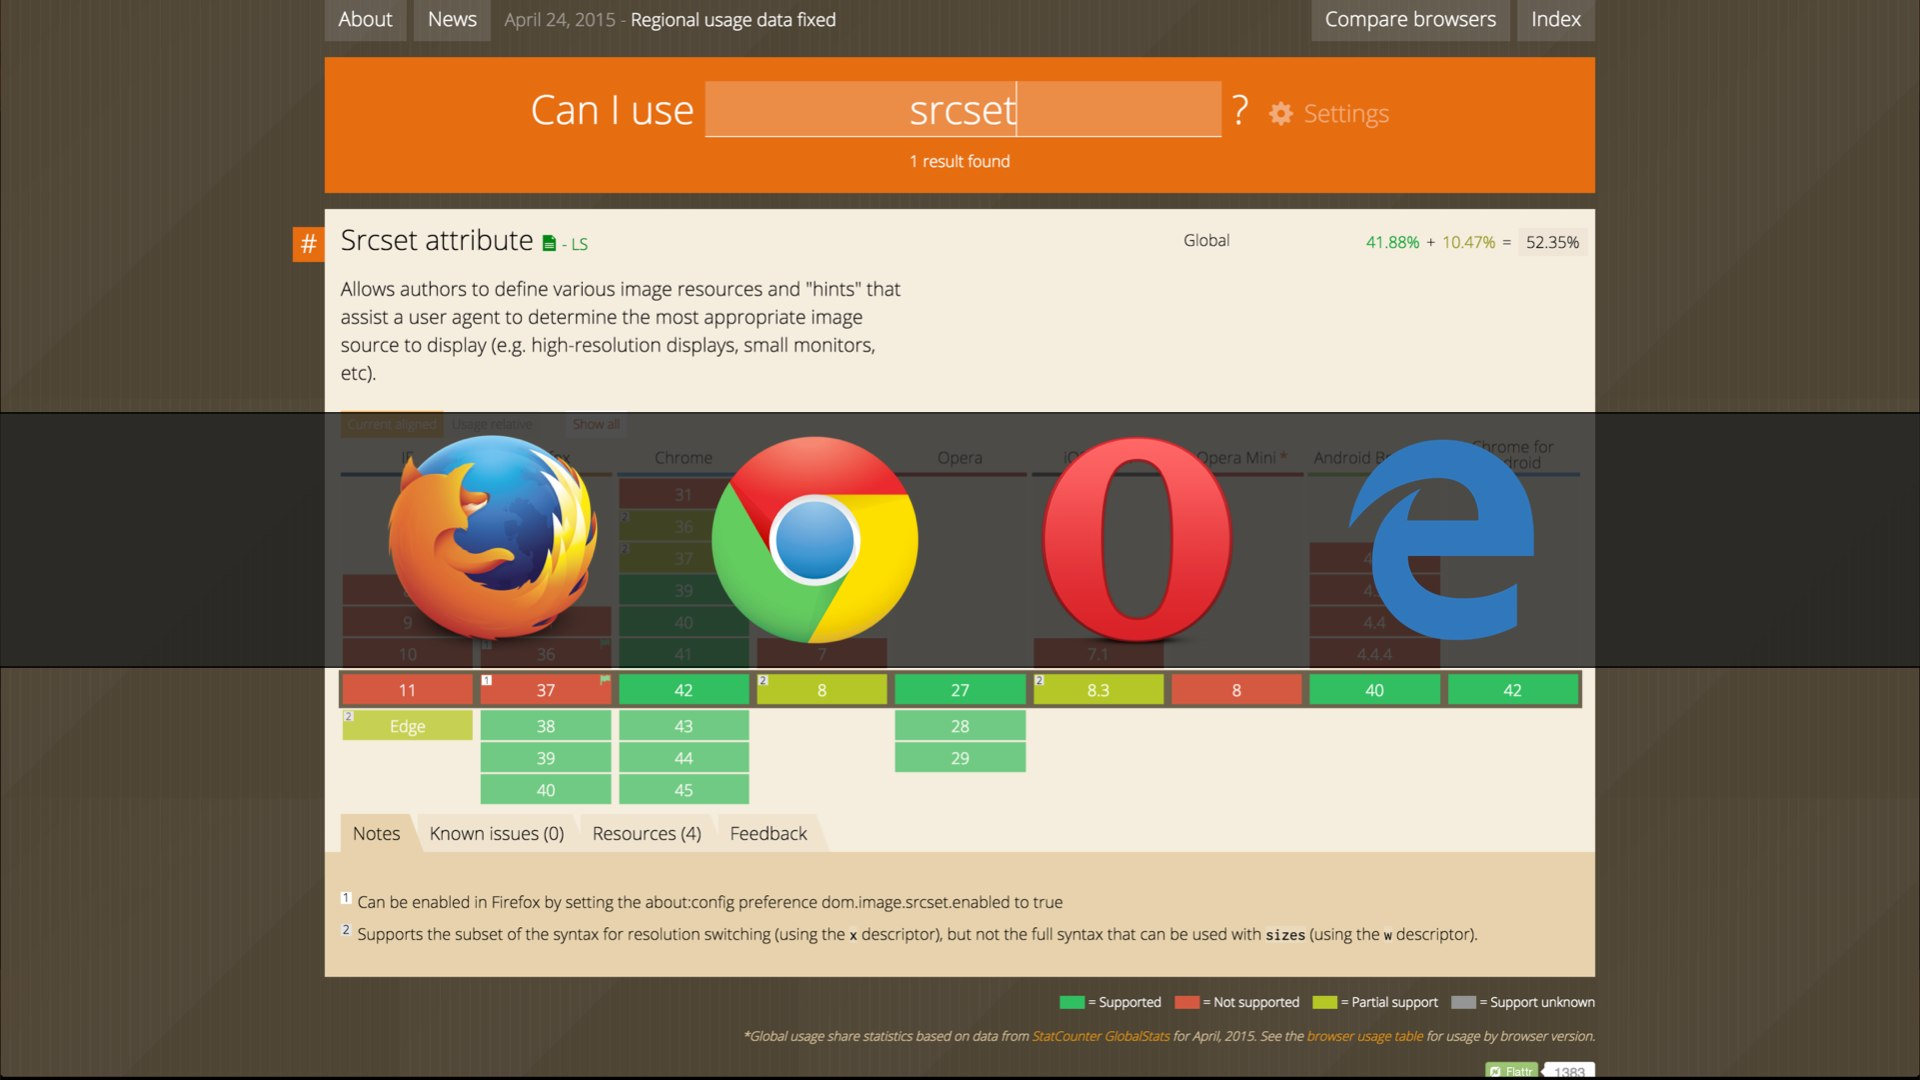 Screenshot of the caniuse.com page for srcset, with the icons for Chrome, Opera, Firefox, and MS Edge browsers superimposed over it.